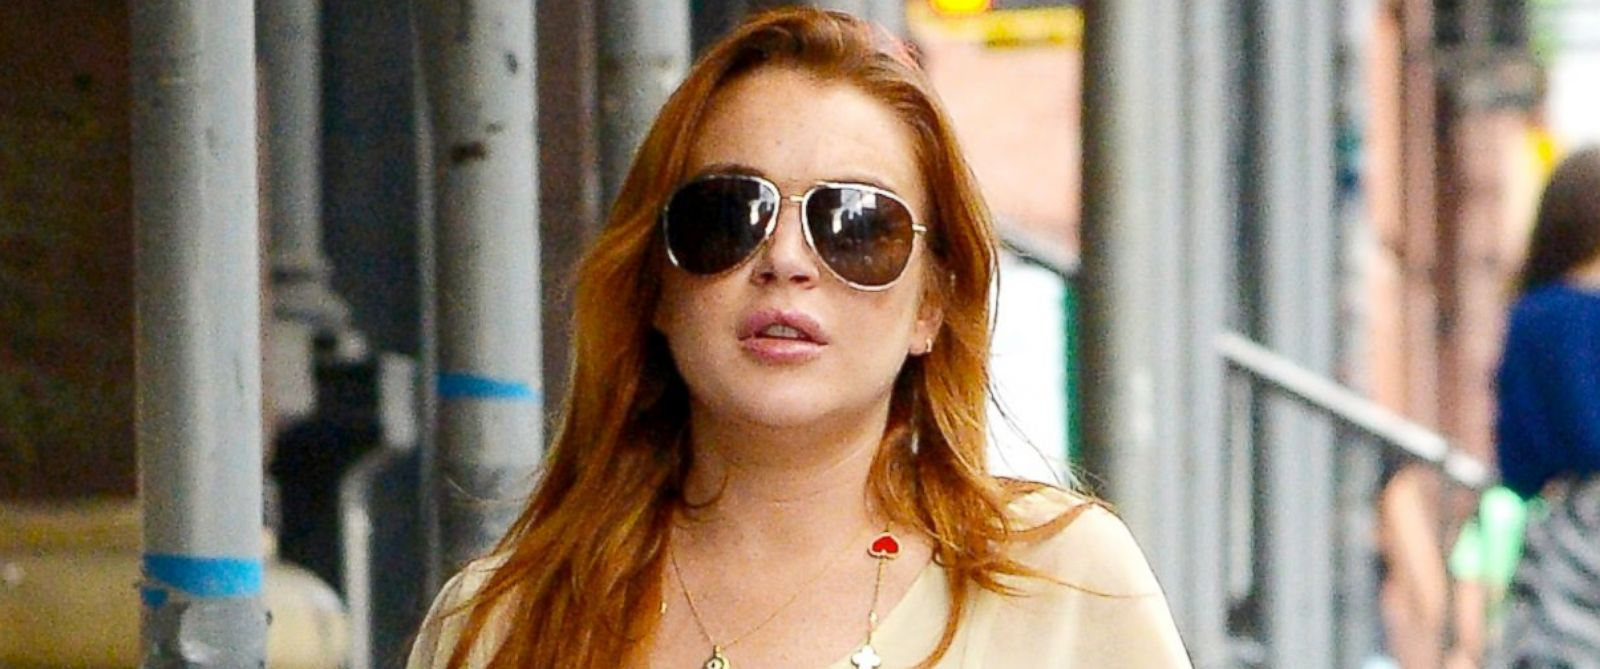 PHOTO: Lindsay Lohan is seen out in New York City, July 1, 2014.